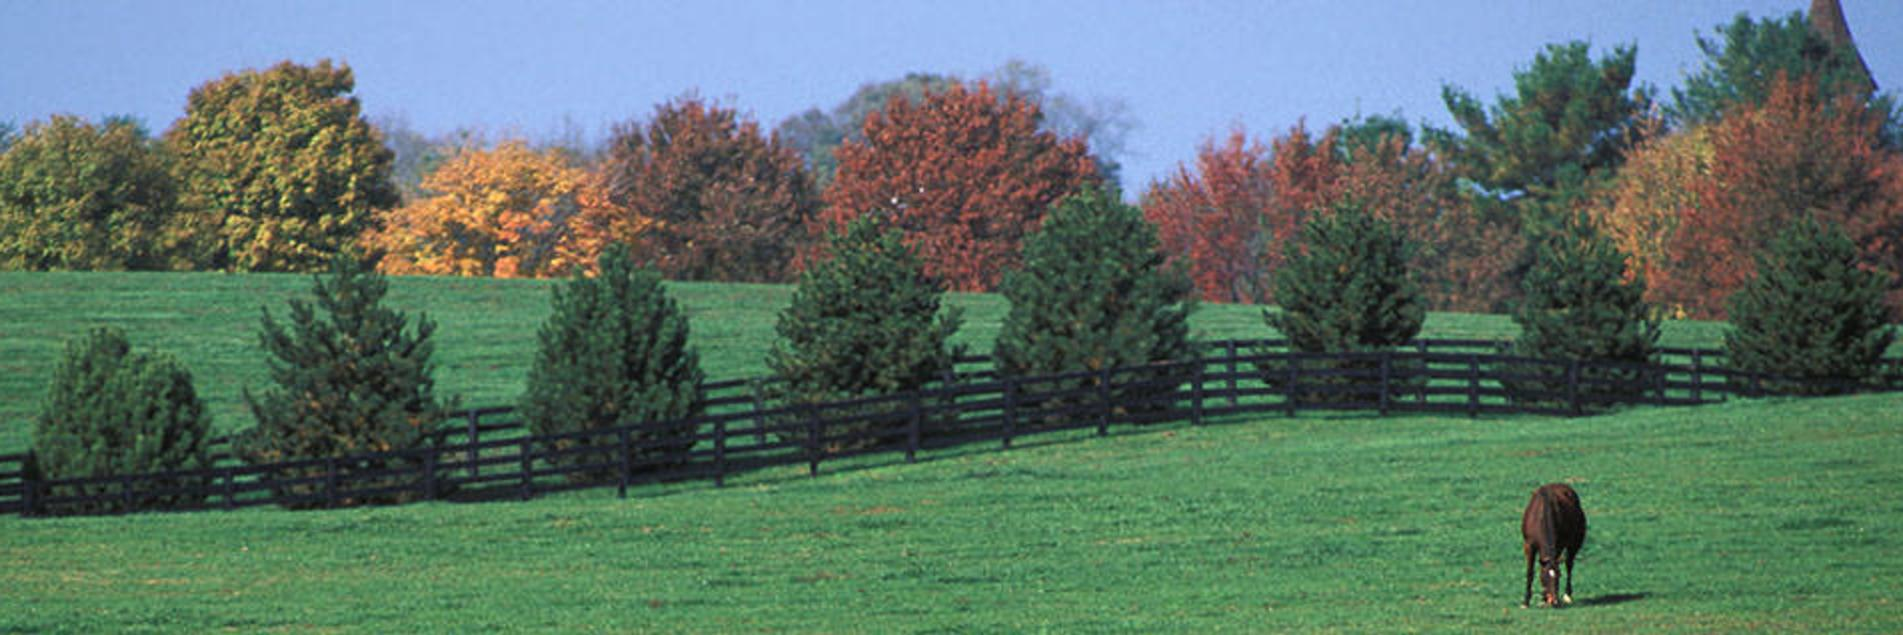 Fall Foliage in Lexington\'s Bluegrass Region